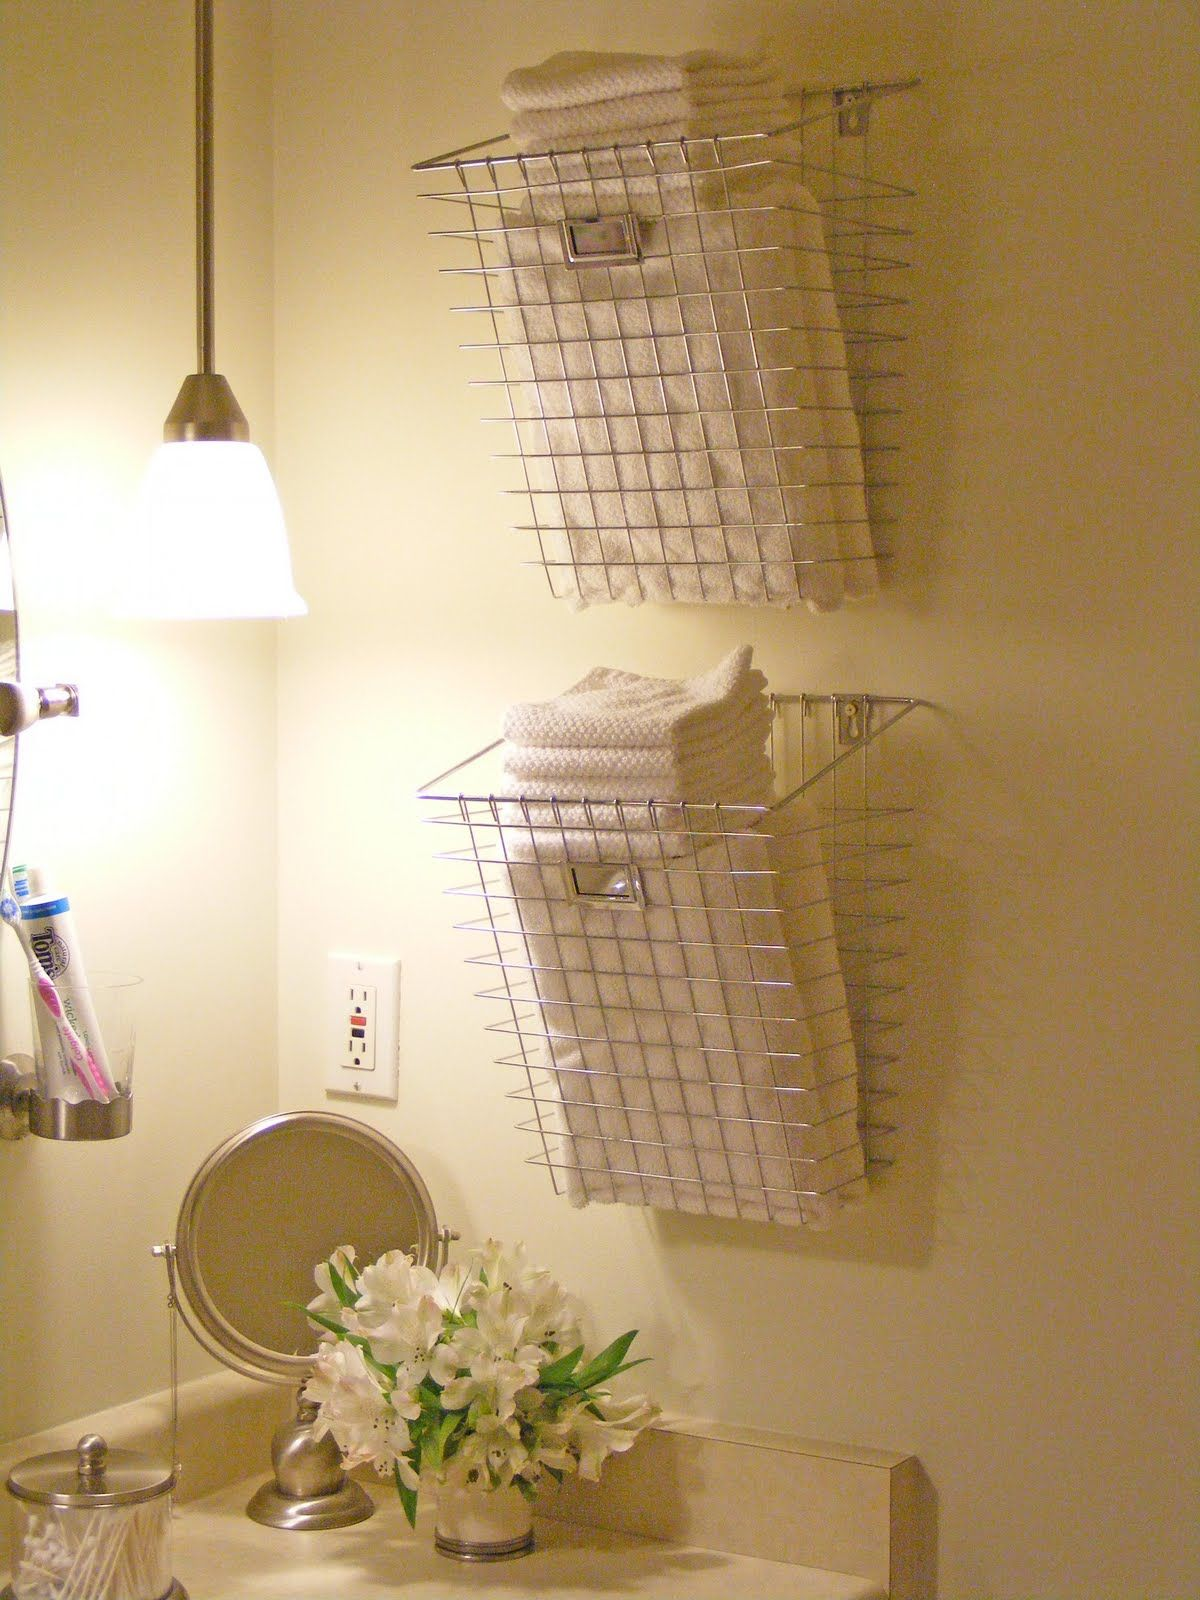 Paper slots as towel holders i should put this in organization too